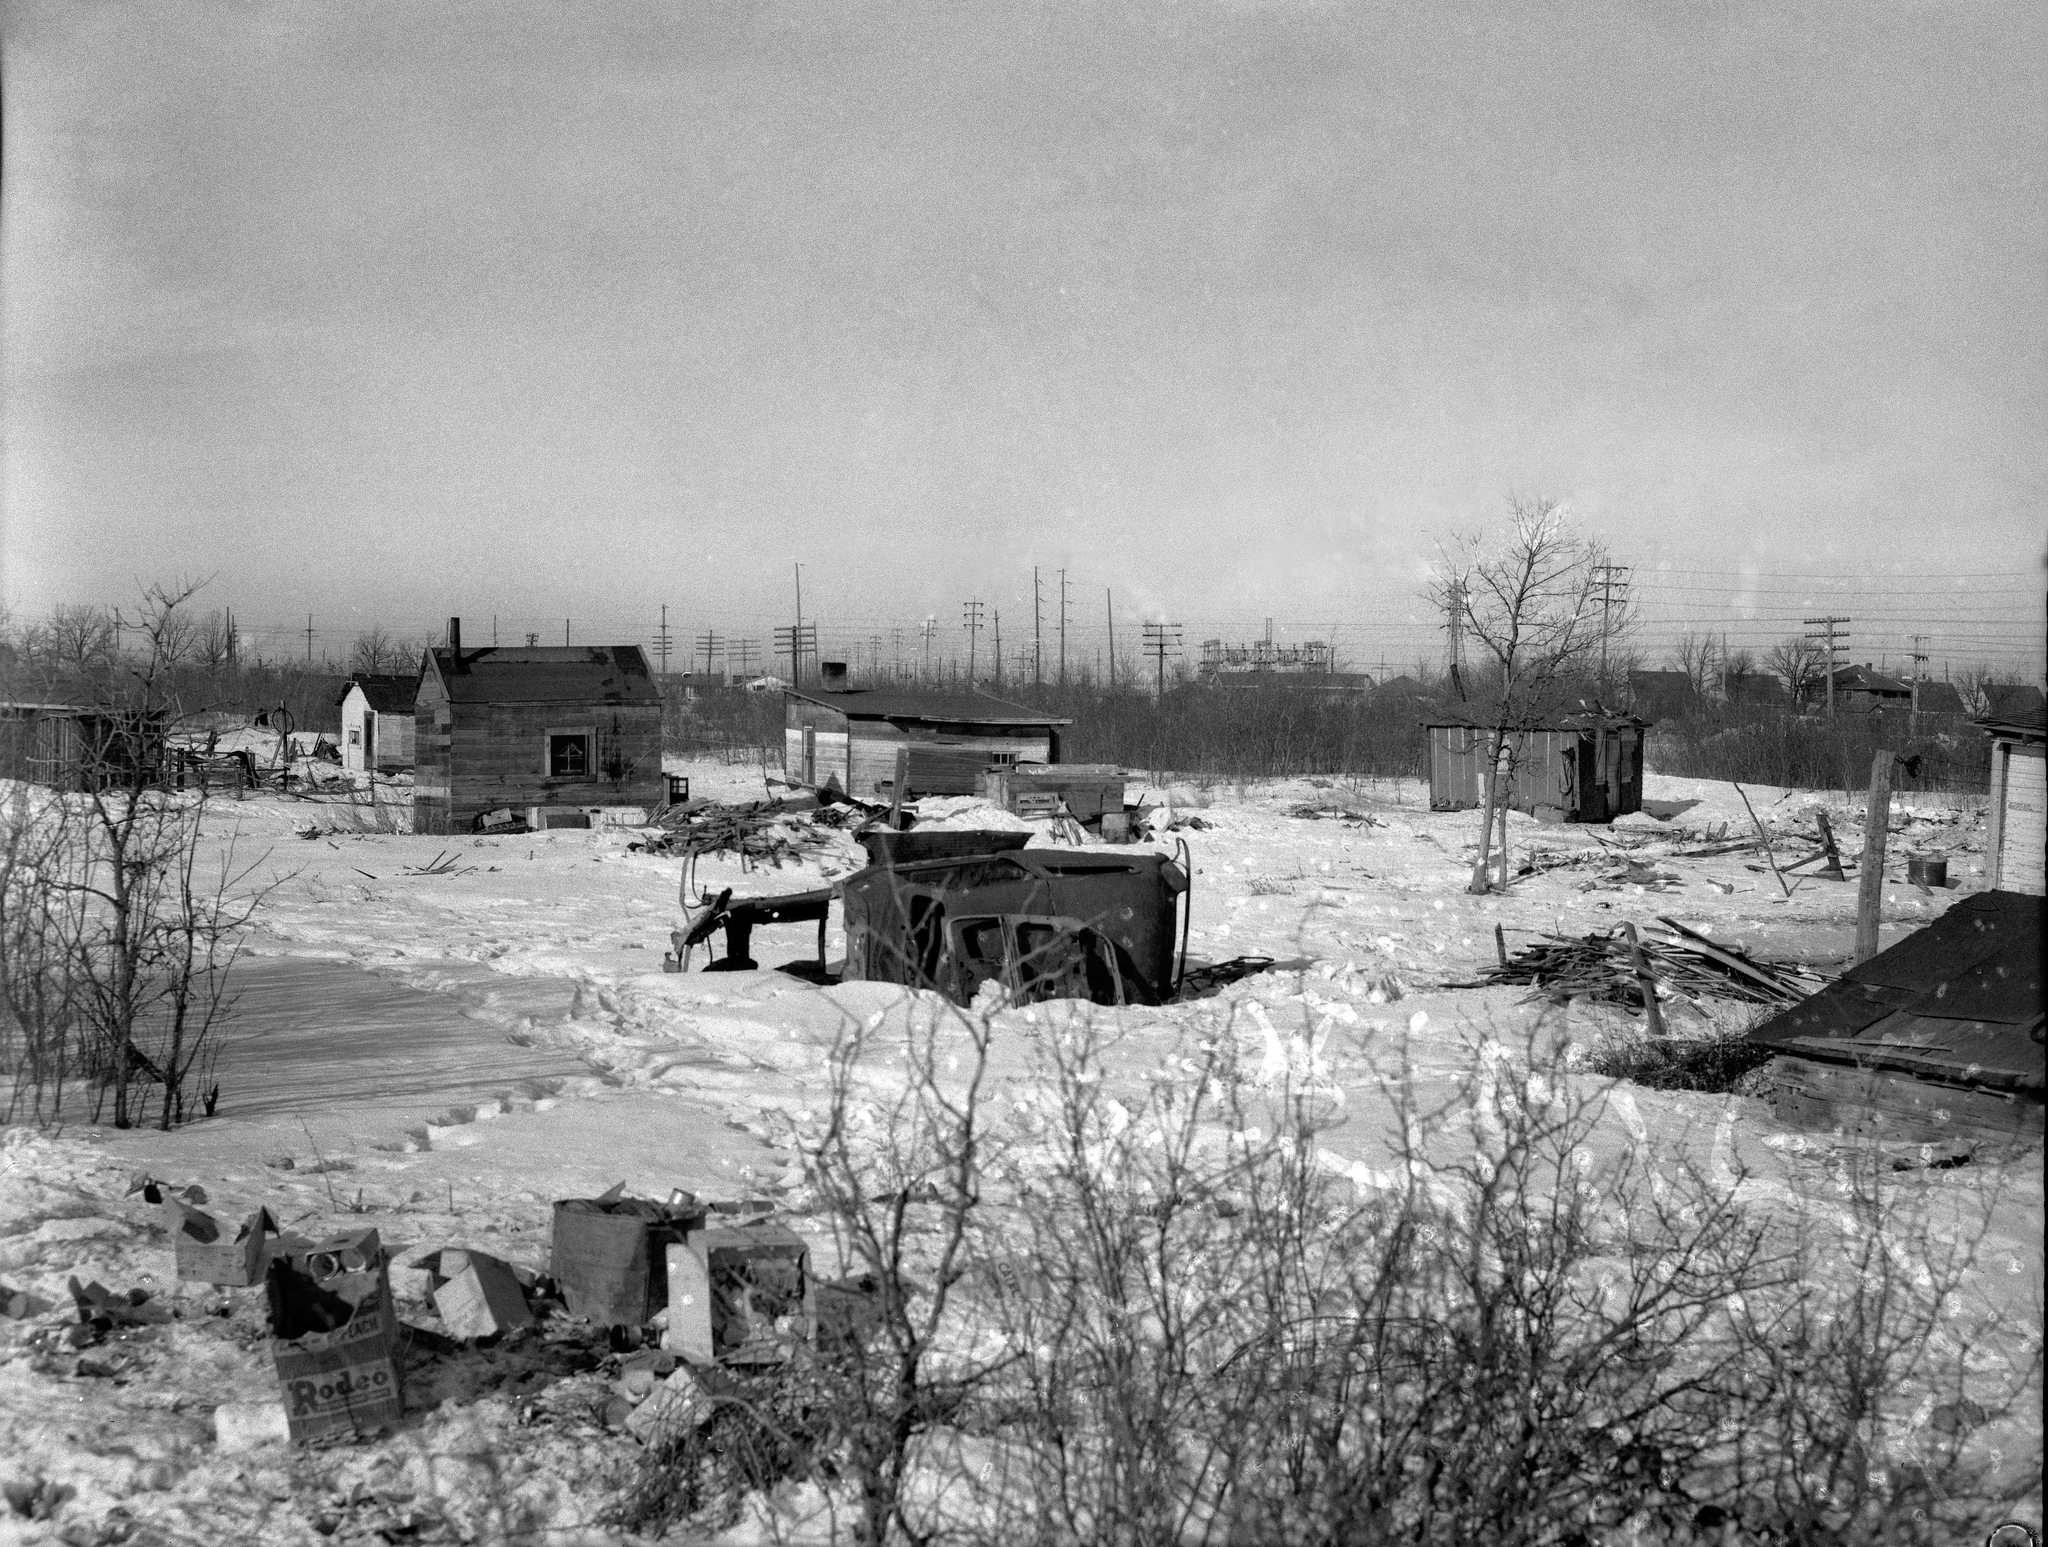 Gerry Cairns / Winnipeg Free Press Collection, Archives of Manitoba</p><p>Rooster Town is seen in March 1959. Soon afterward, residents were evicted and the buildings demolished to make way for new development.</p></p>